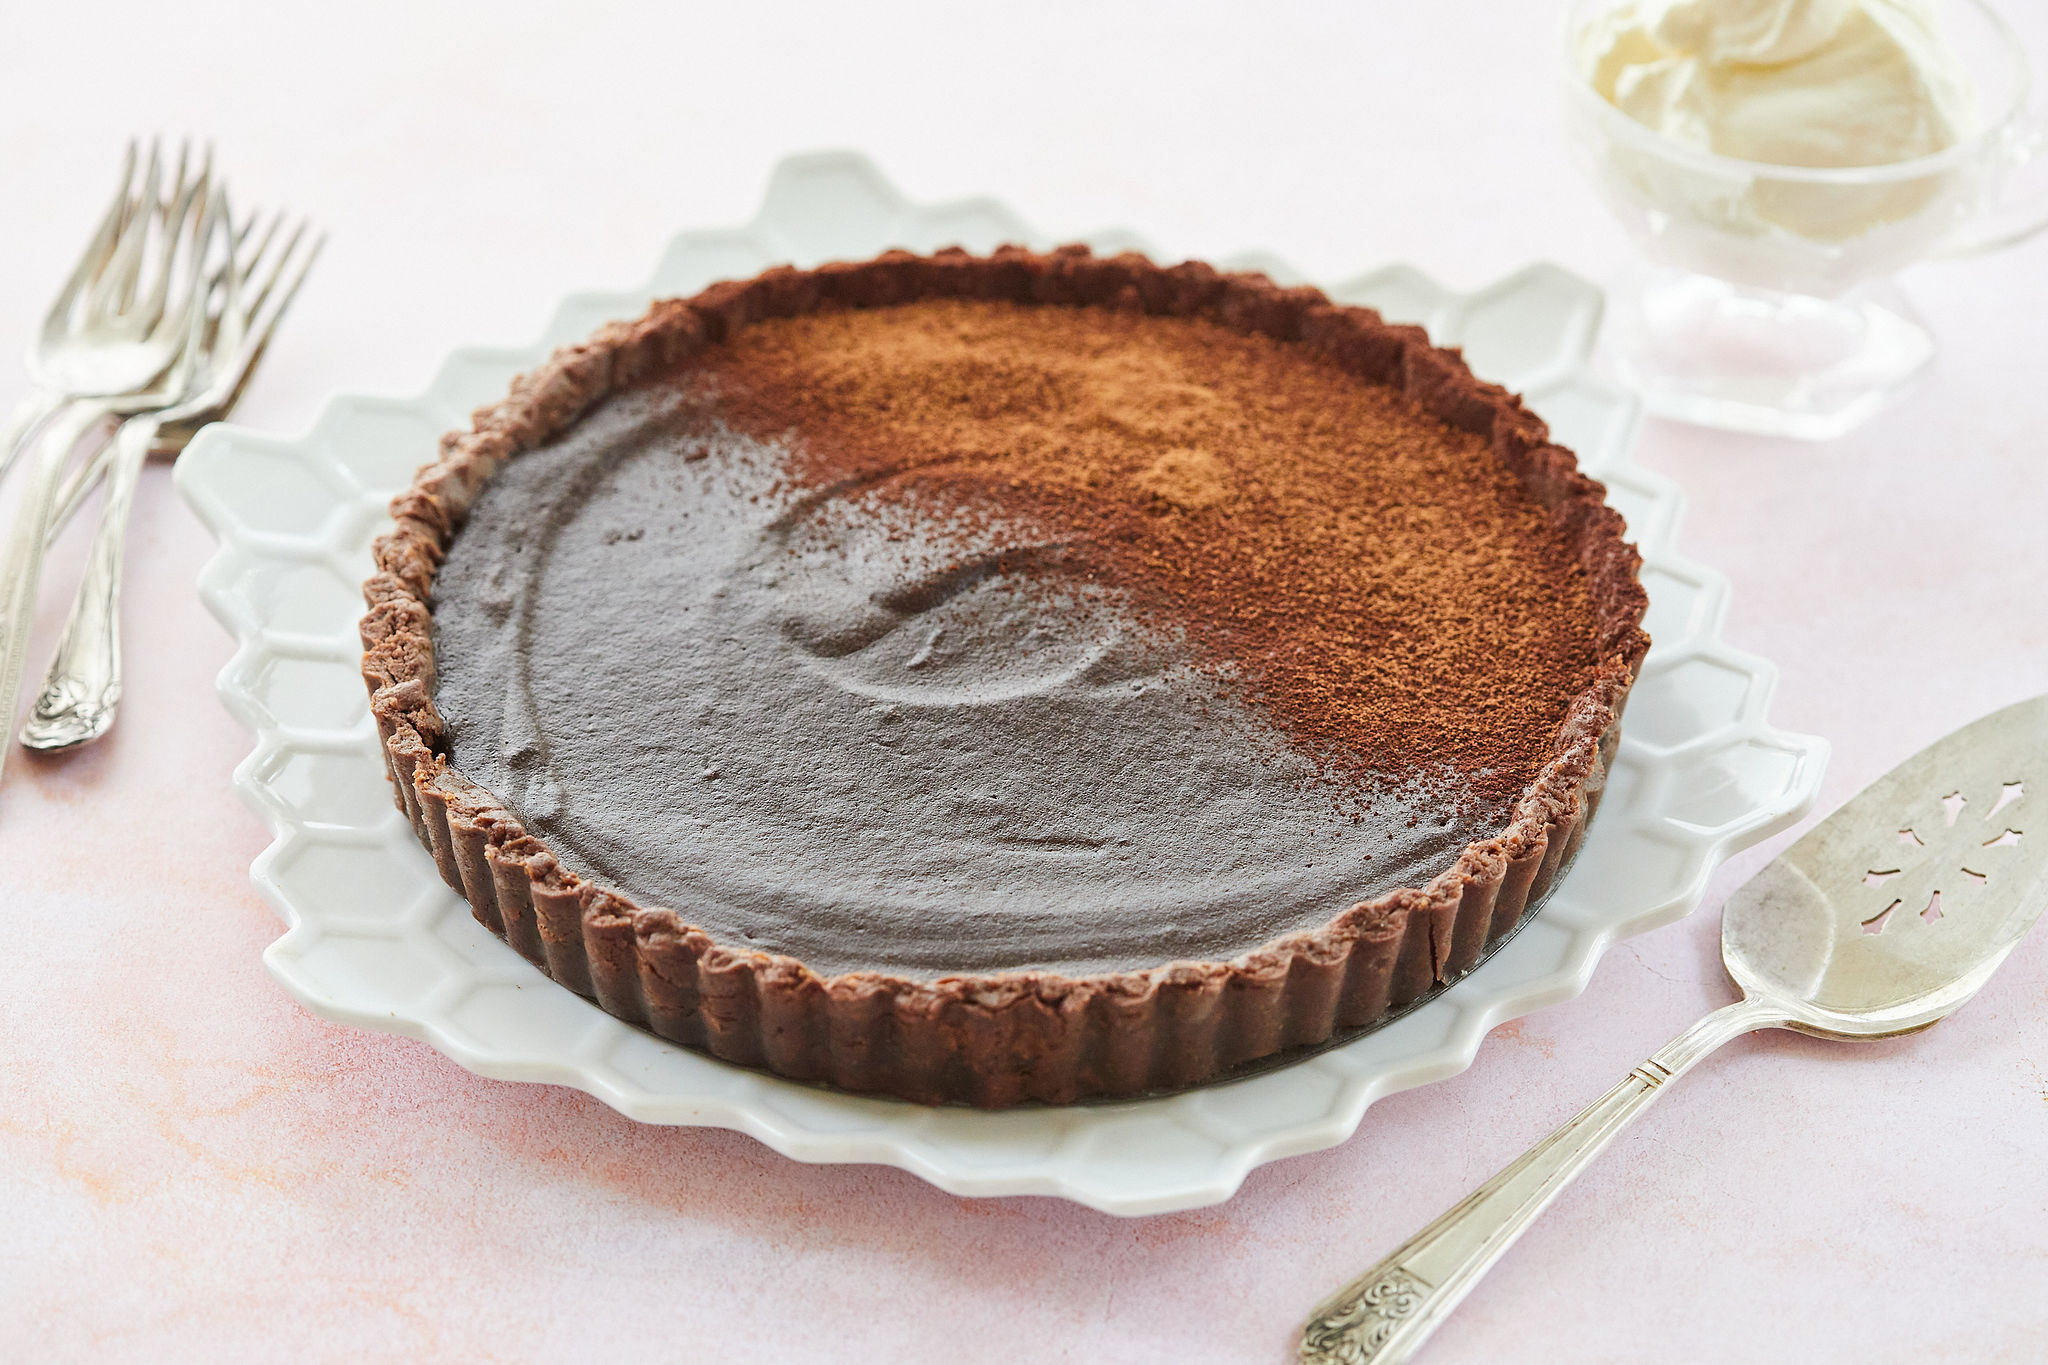 The whole Chocolate Tart on a platter ready to cut and serve.